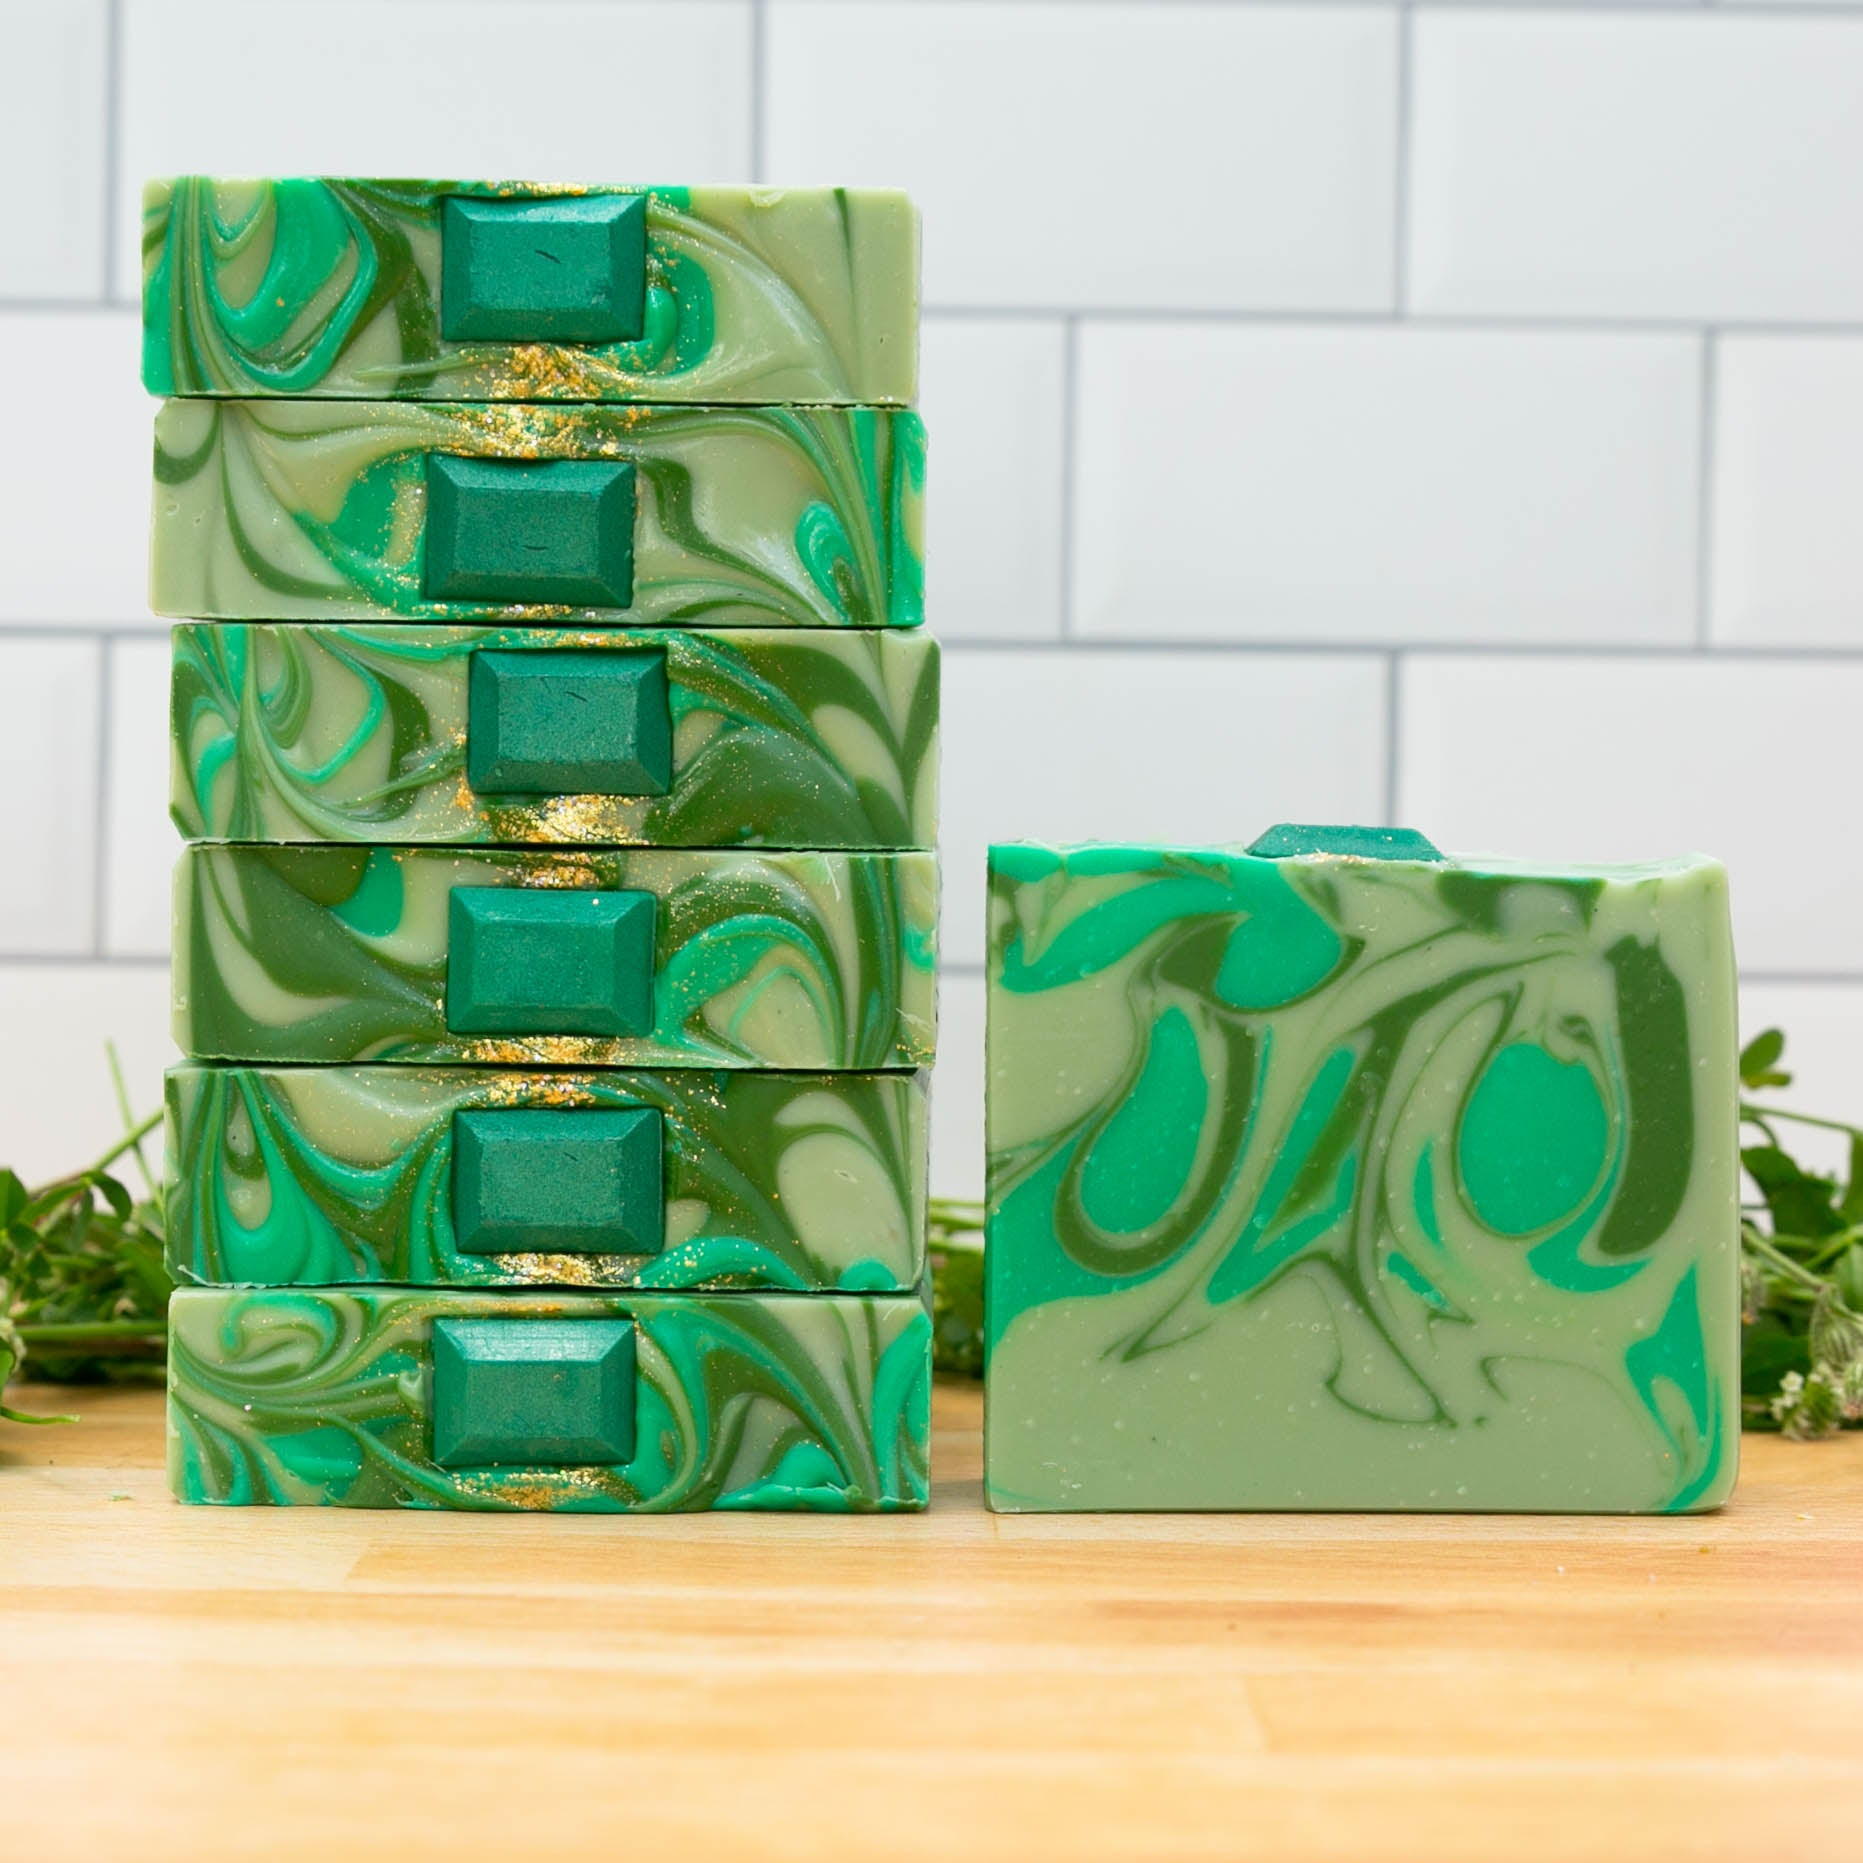 Emerald Gemstone Artisan Soap